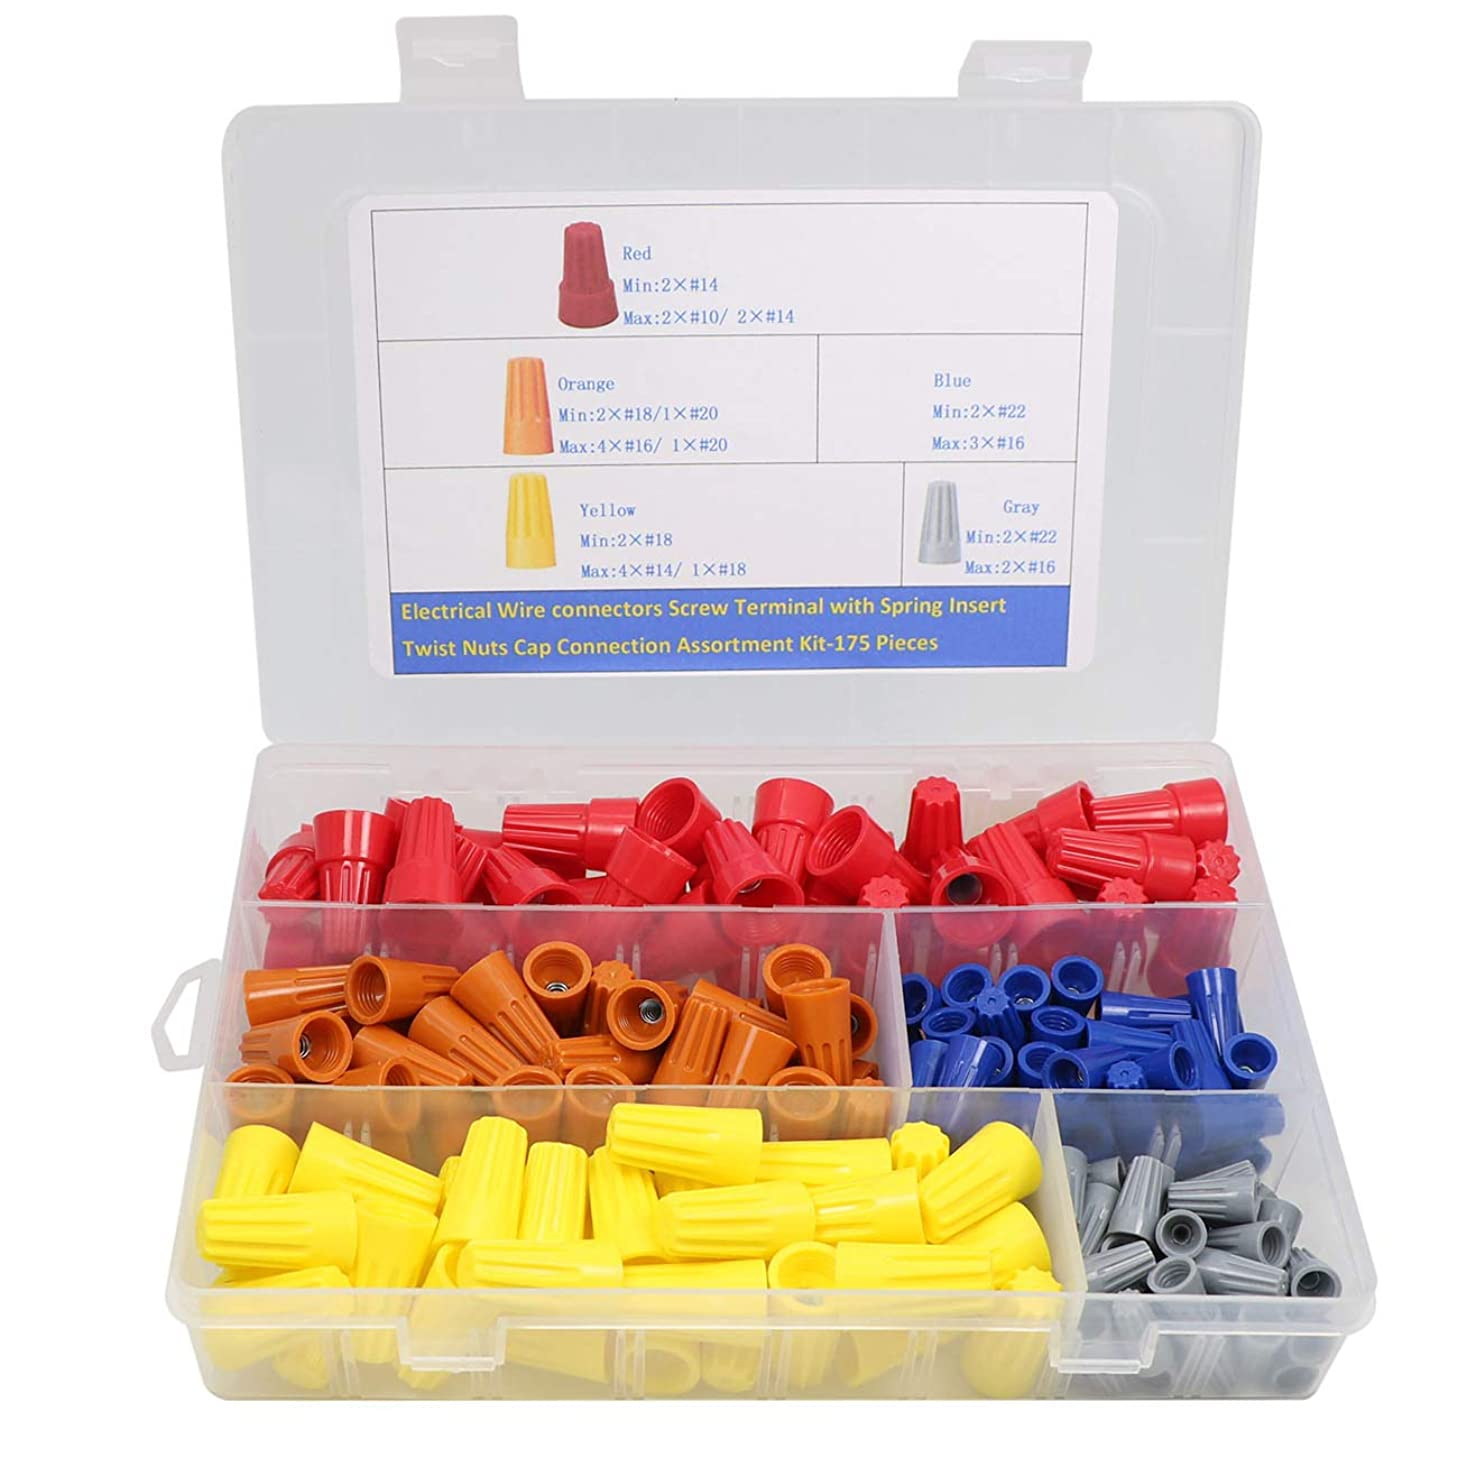 175PCS Electrical Wire Connectors Screw Terminals,with Spring Insert Twist Nuts Caps Connection Assortment Set – Gray, Blue, Yellow and Red Connectors with Storage Case